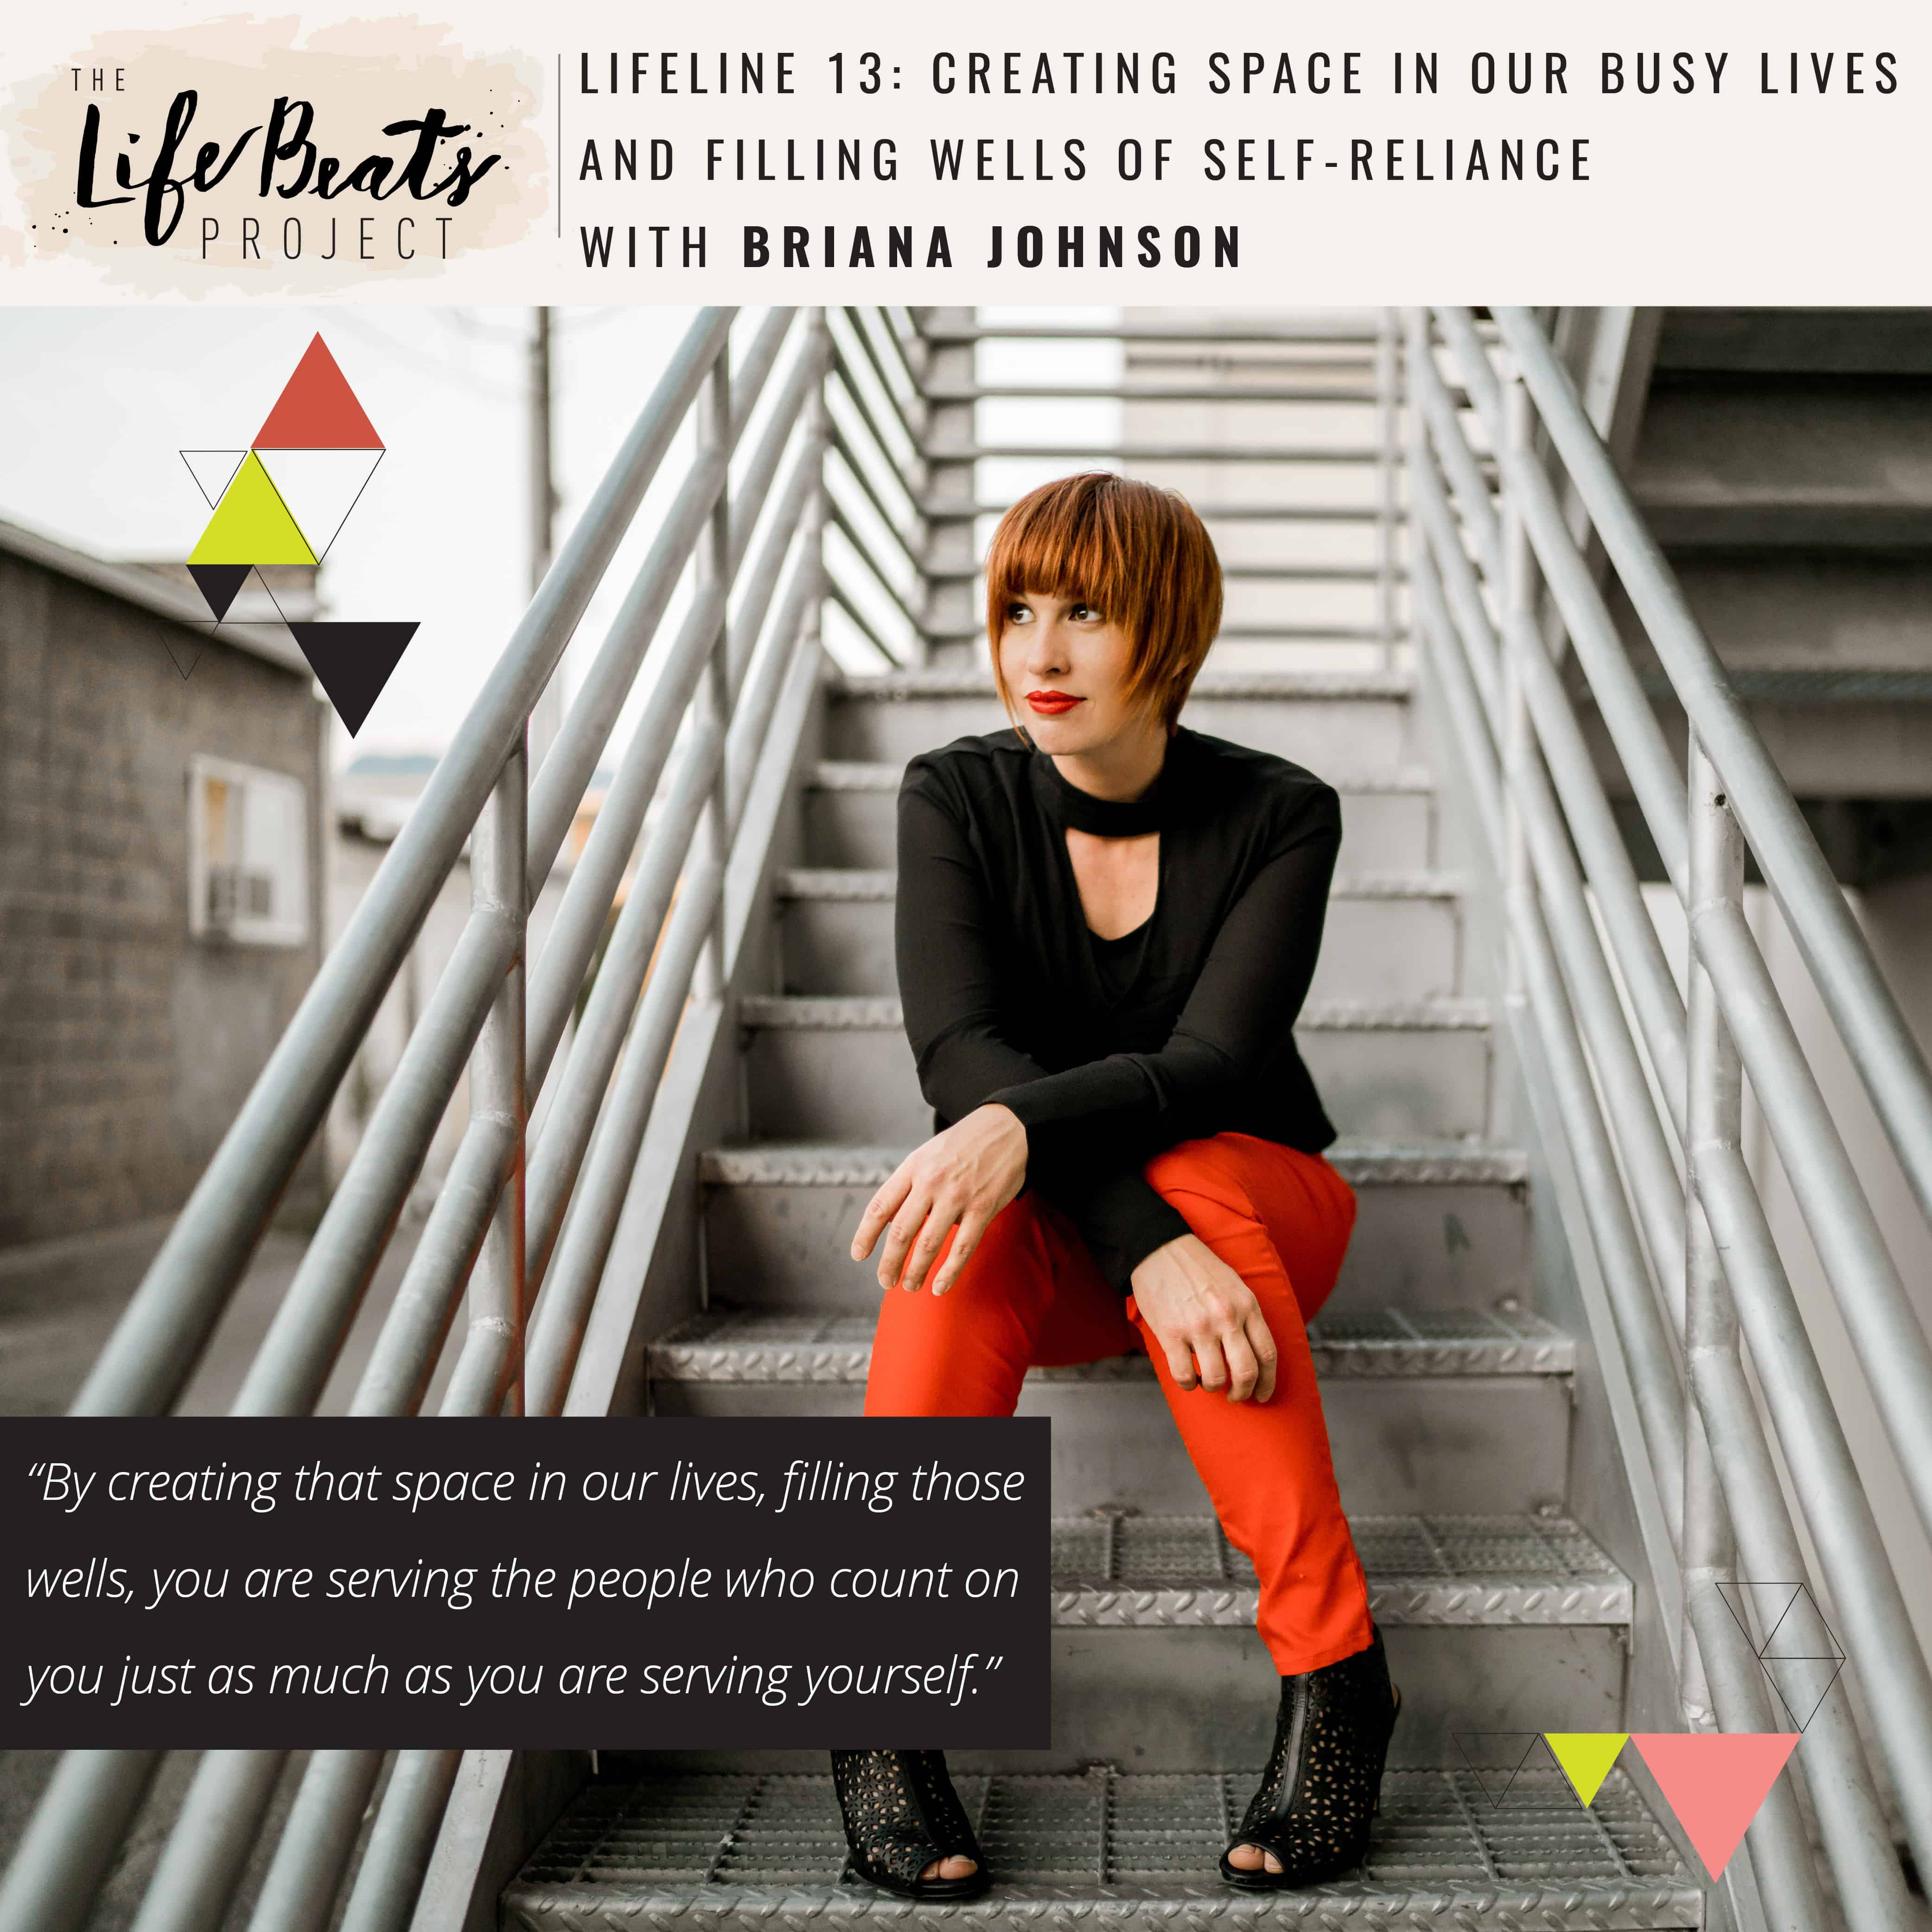 LifeLine Podcast episode The LifeBeats Project - Creating space silence stillness self-reliance